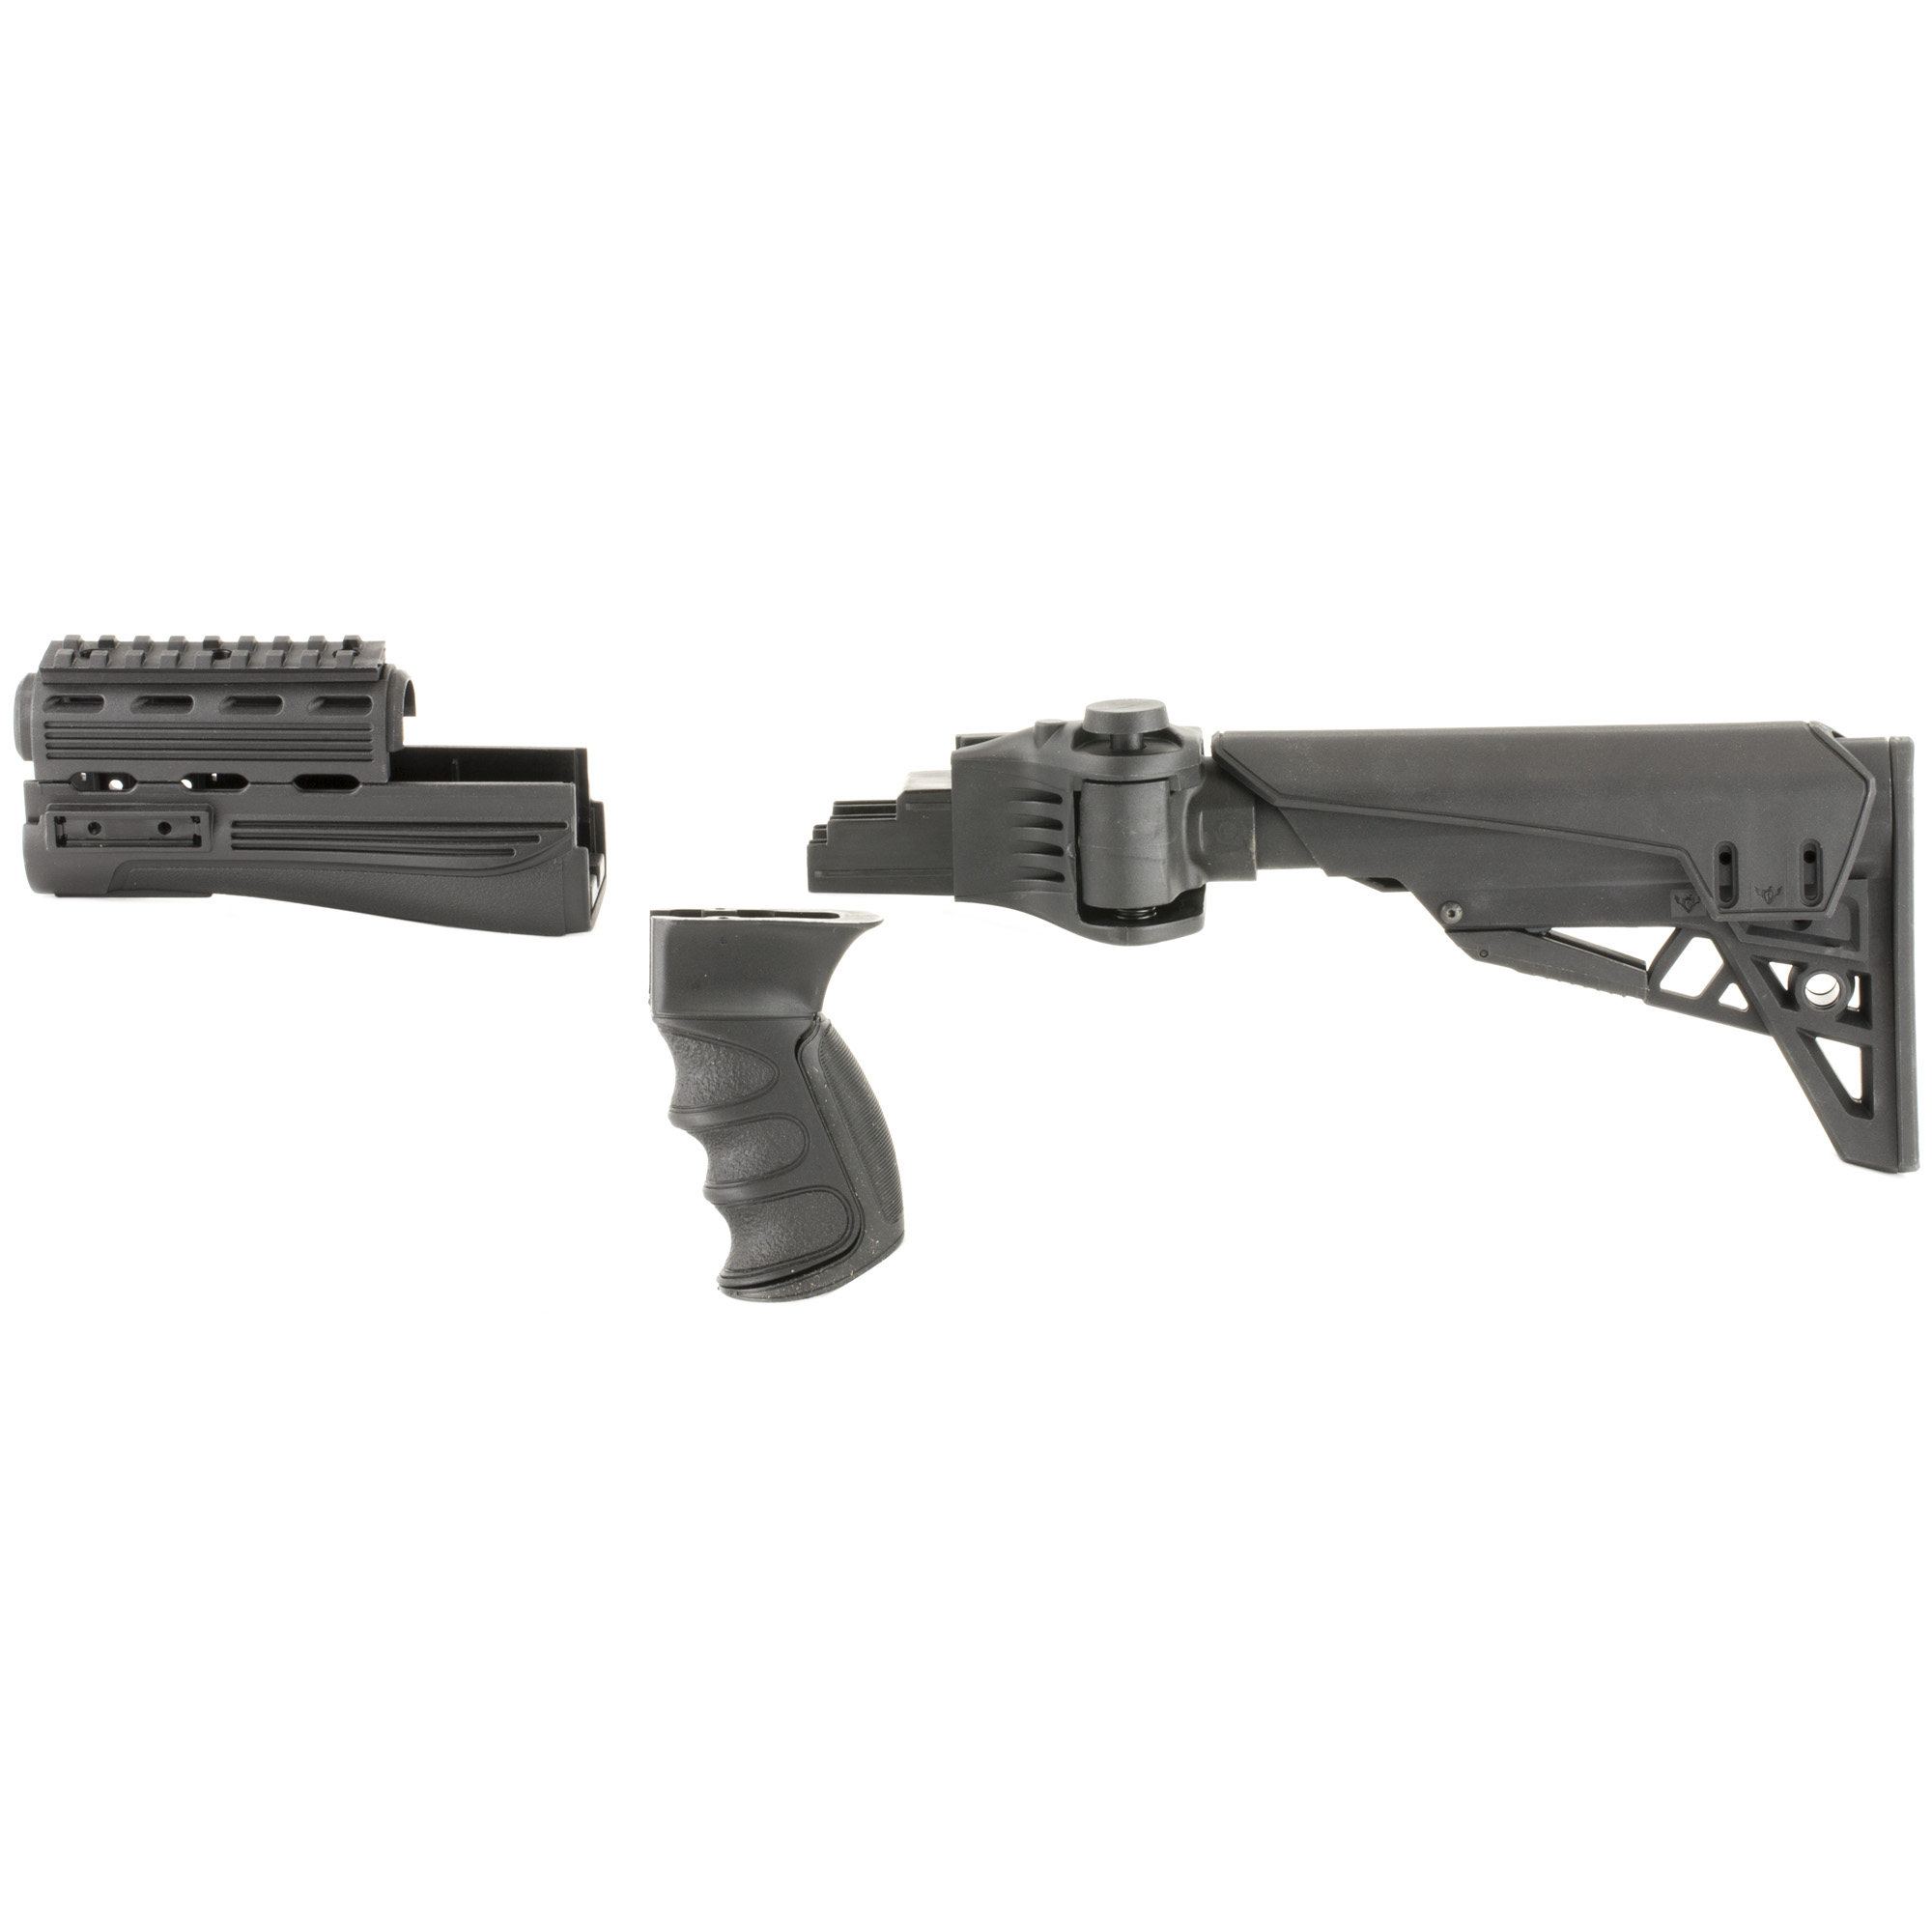 """The Advanced Technology Int. Strike force AK-47 Package fits most stamped receivers but will not fit milled receivers. It is an Adjustable Side-Folding Strike force Stock with Scorpion recoil system"""" ventilated handguards"""" pistol grip and adjustable cheek rest. It is a 6-position adjustable side-folding stock and can be fired from a folded position. The TracLock System eliminates horizontal and vertical movement of the stock on the buffer tube. The Scorpion Razorback Recoil pad is non-slip and removable and the Scorpion Recoil Pistol Grip is ergonomic with a Sure-Grip texture. There is a removable/adjustable tactical cheek rest that is elongated and designed to fit all users. The included short cheek rest has 1/2"""" of adjustment. There are four Picatinny Rail locations: One 4"""" Picatinny Rail"""" Two 2"""" Picatinny Rails and One 2"""" Picatinny Rail with swivel stud and blank inserts for when rails are not in use. Manufactured in the USA."""